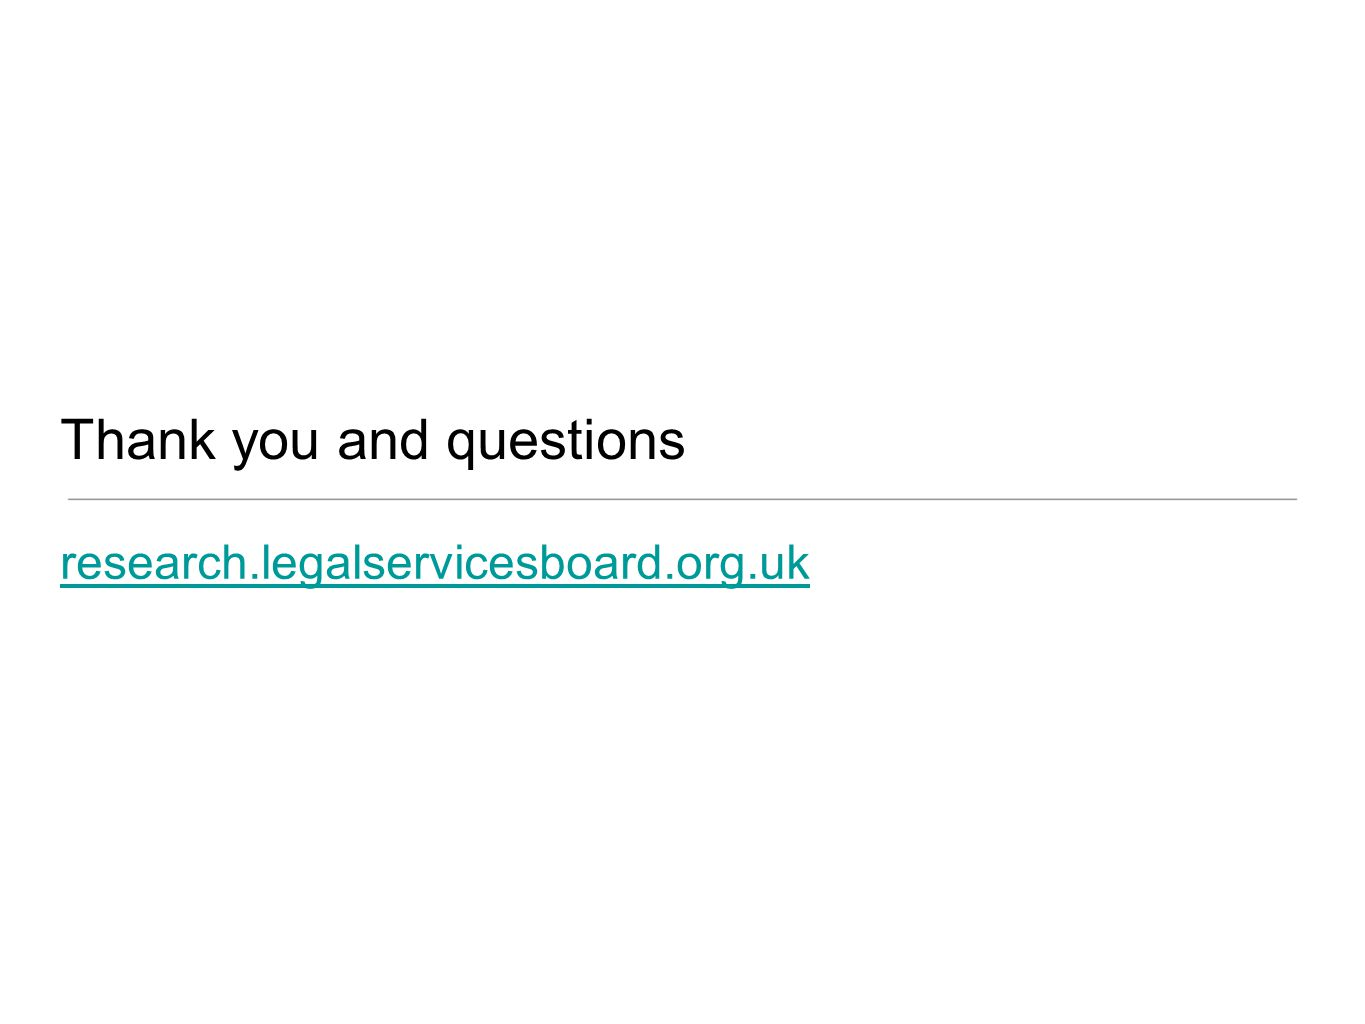 Thank you and questions research.legalservicesboard.org.uk